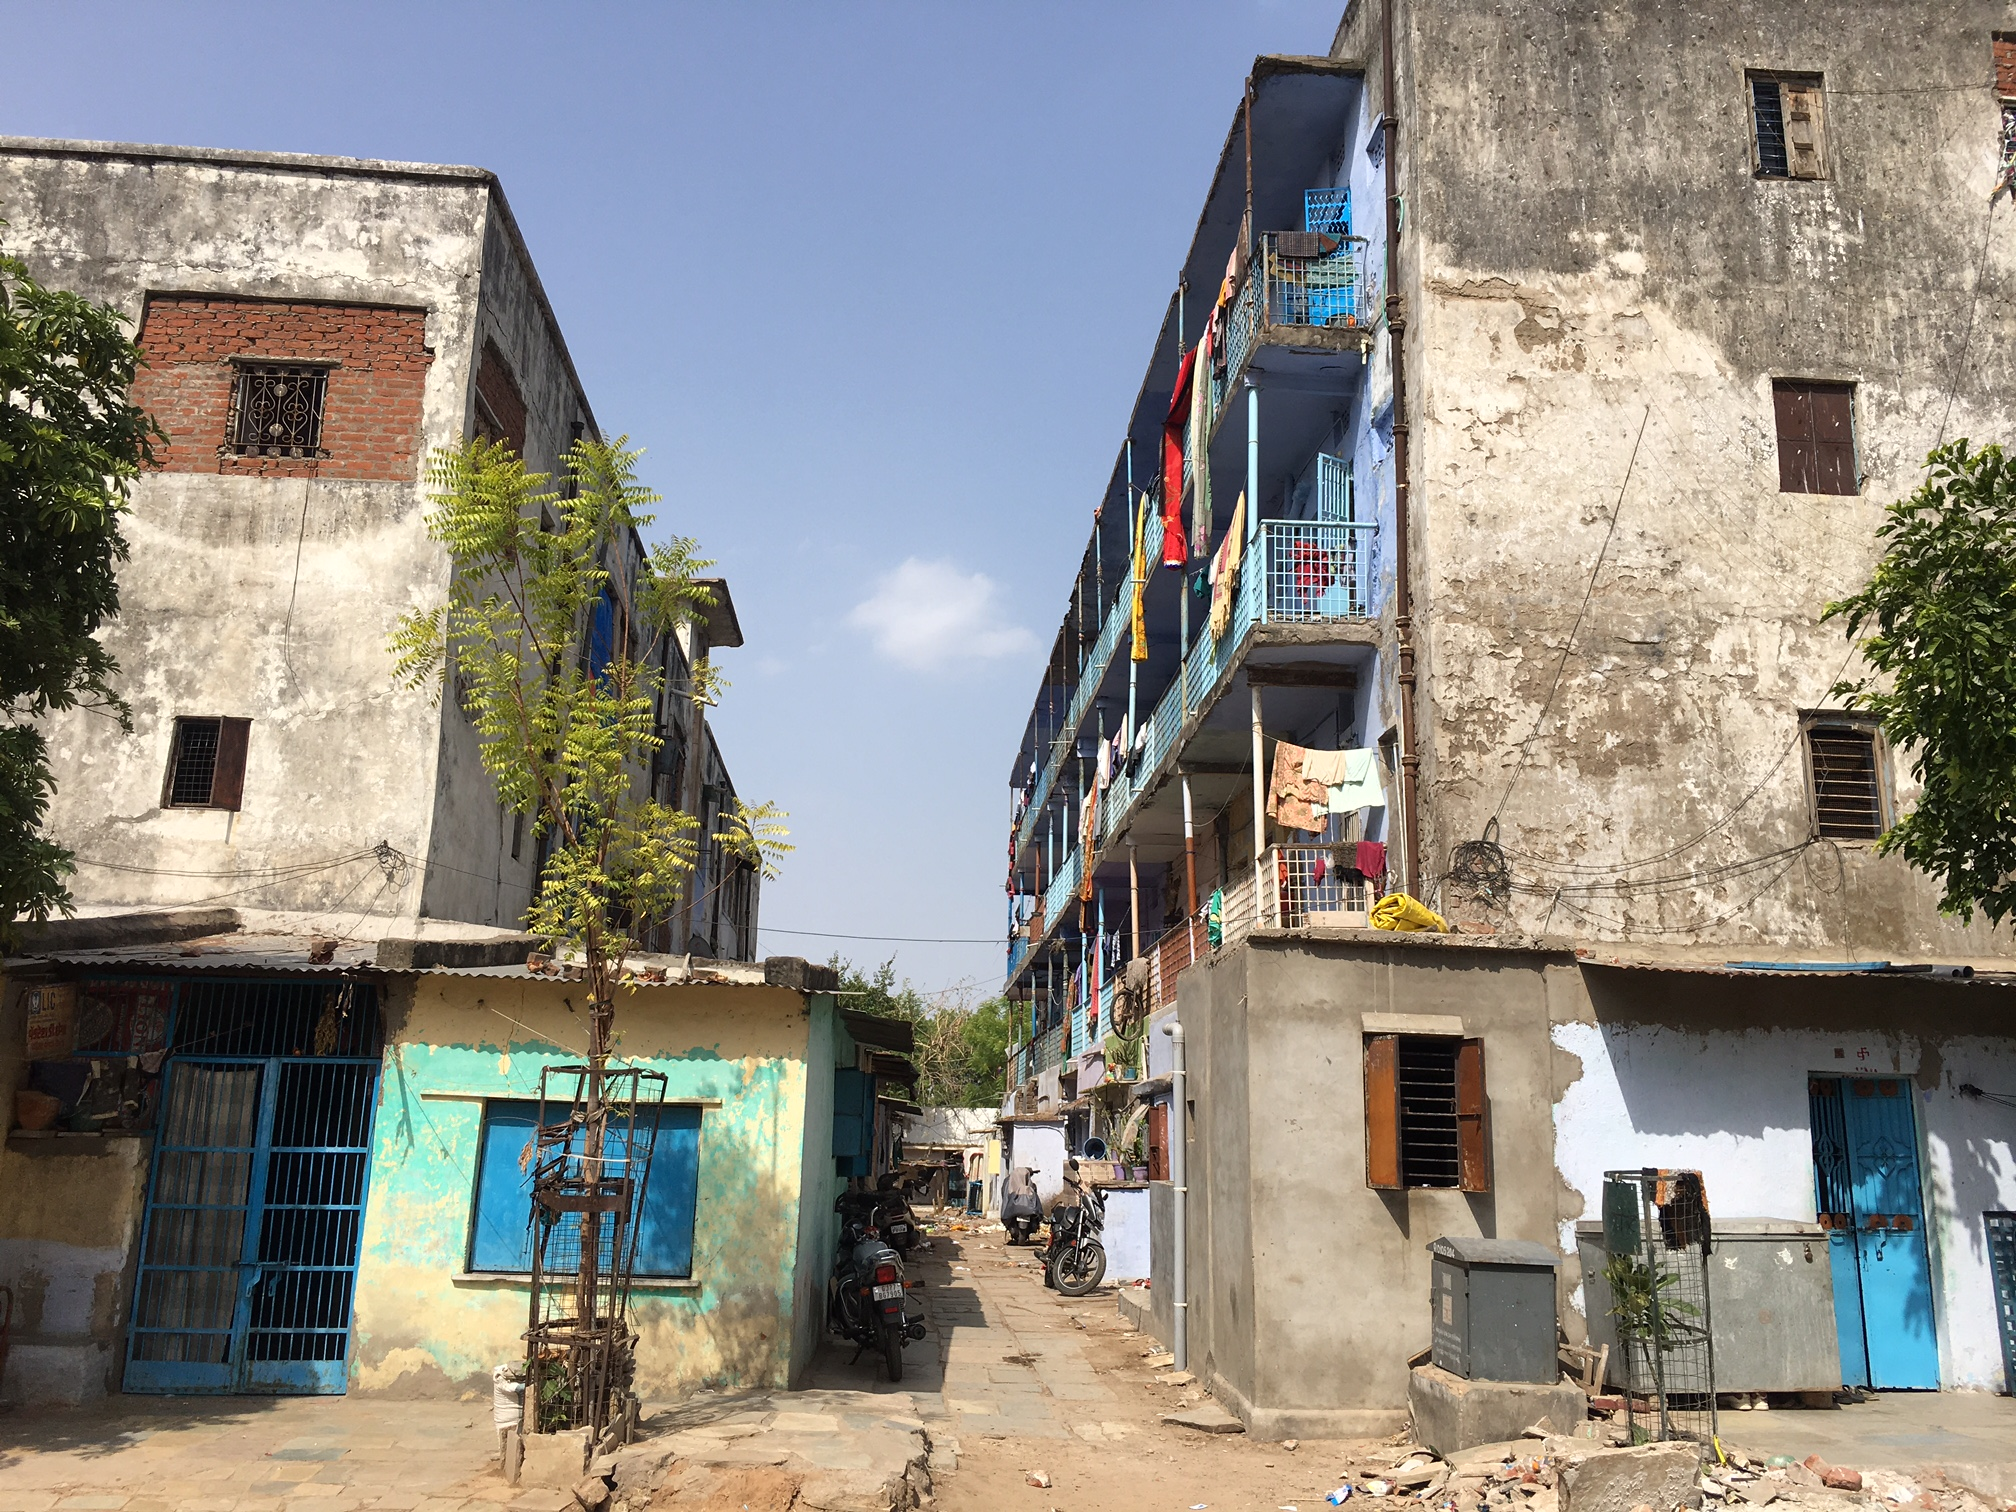 Bapunagar, where Zika surveillance was conducted in early 2017 and blood samples collected from residents. (Photo: Priyanka Vora)